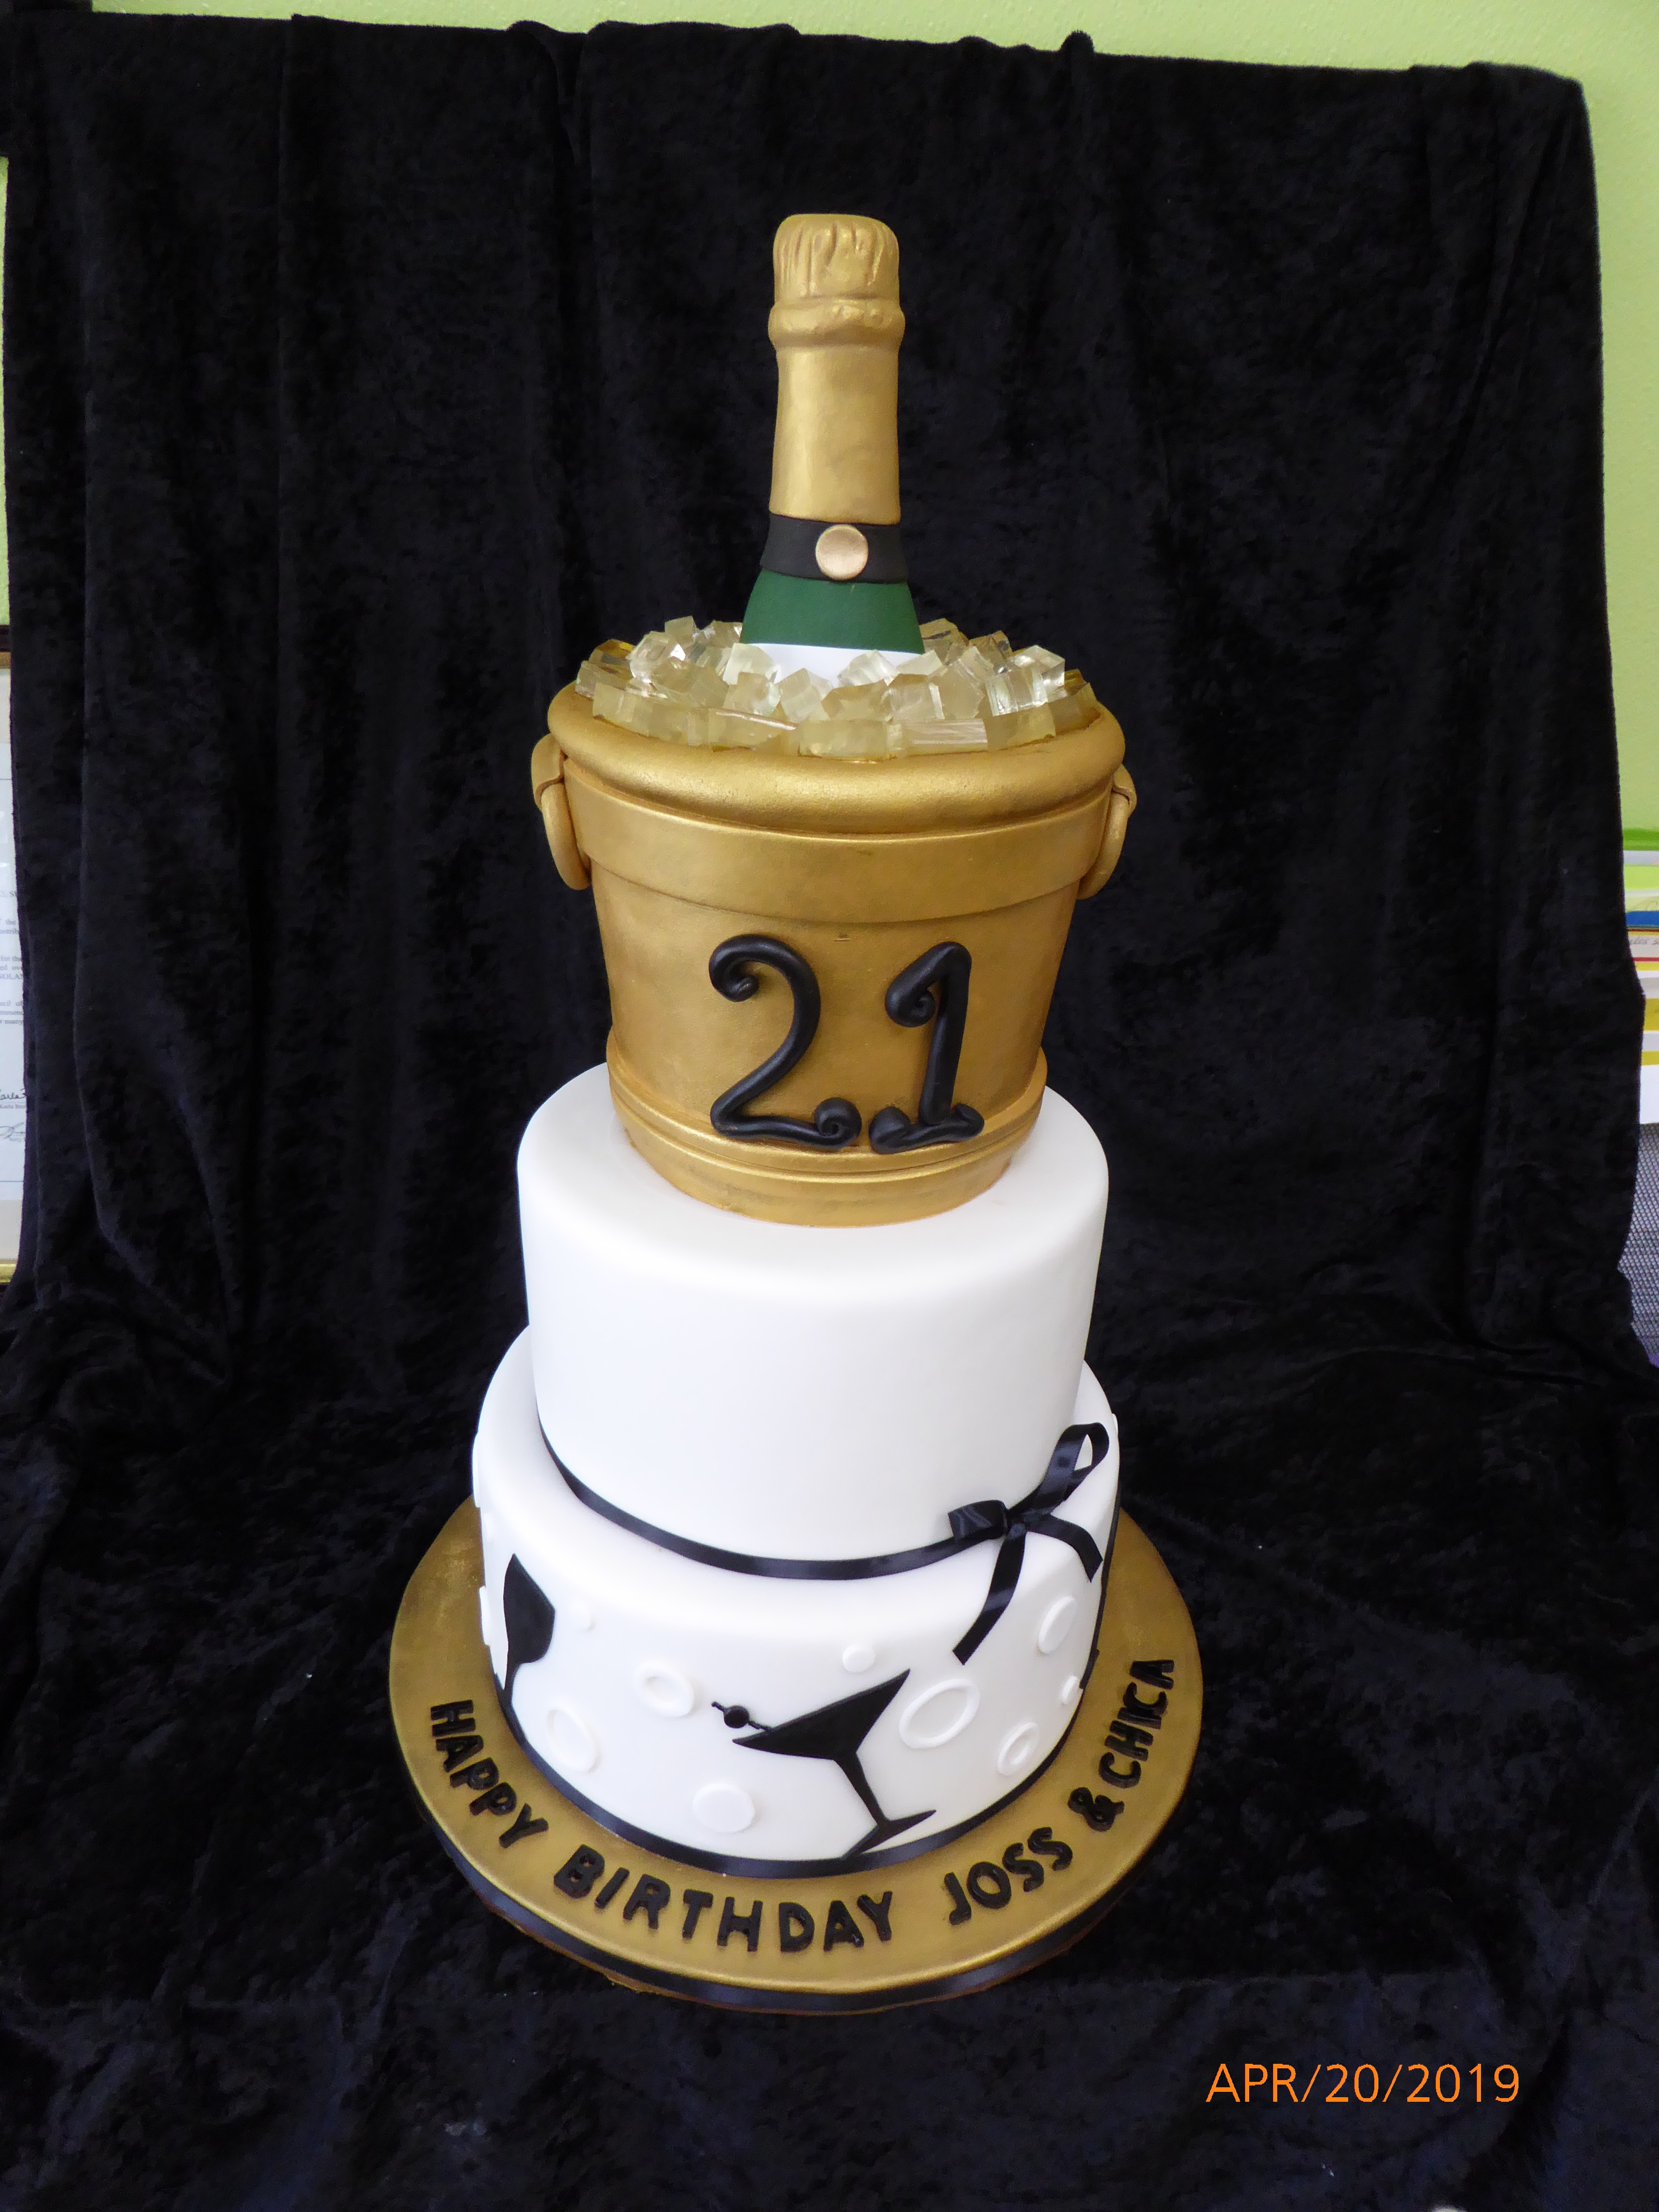 3321, 21st birthday, twenty first birthday, ice bucket, wine, champagne, black, white, gold, martini, tiered